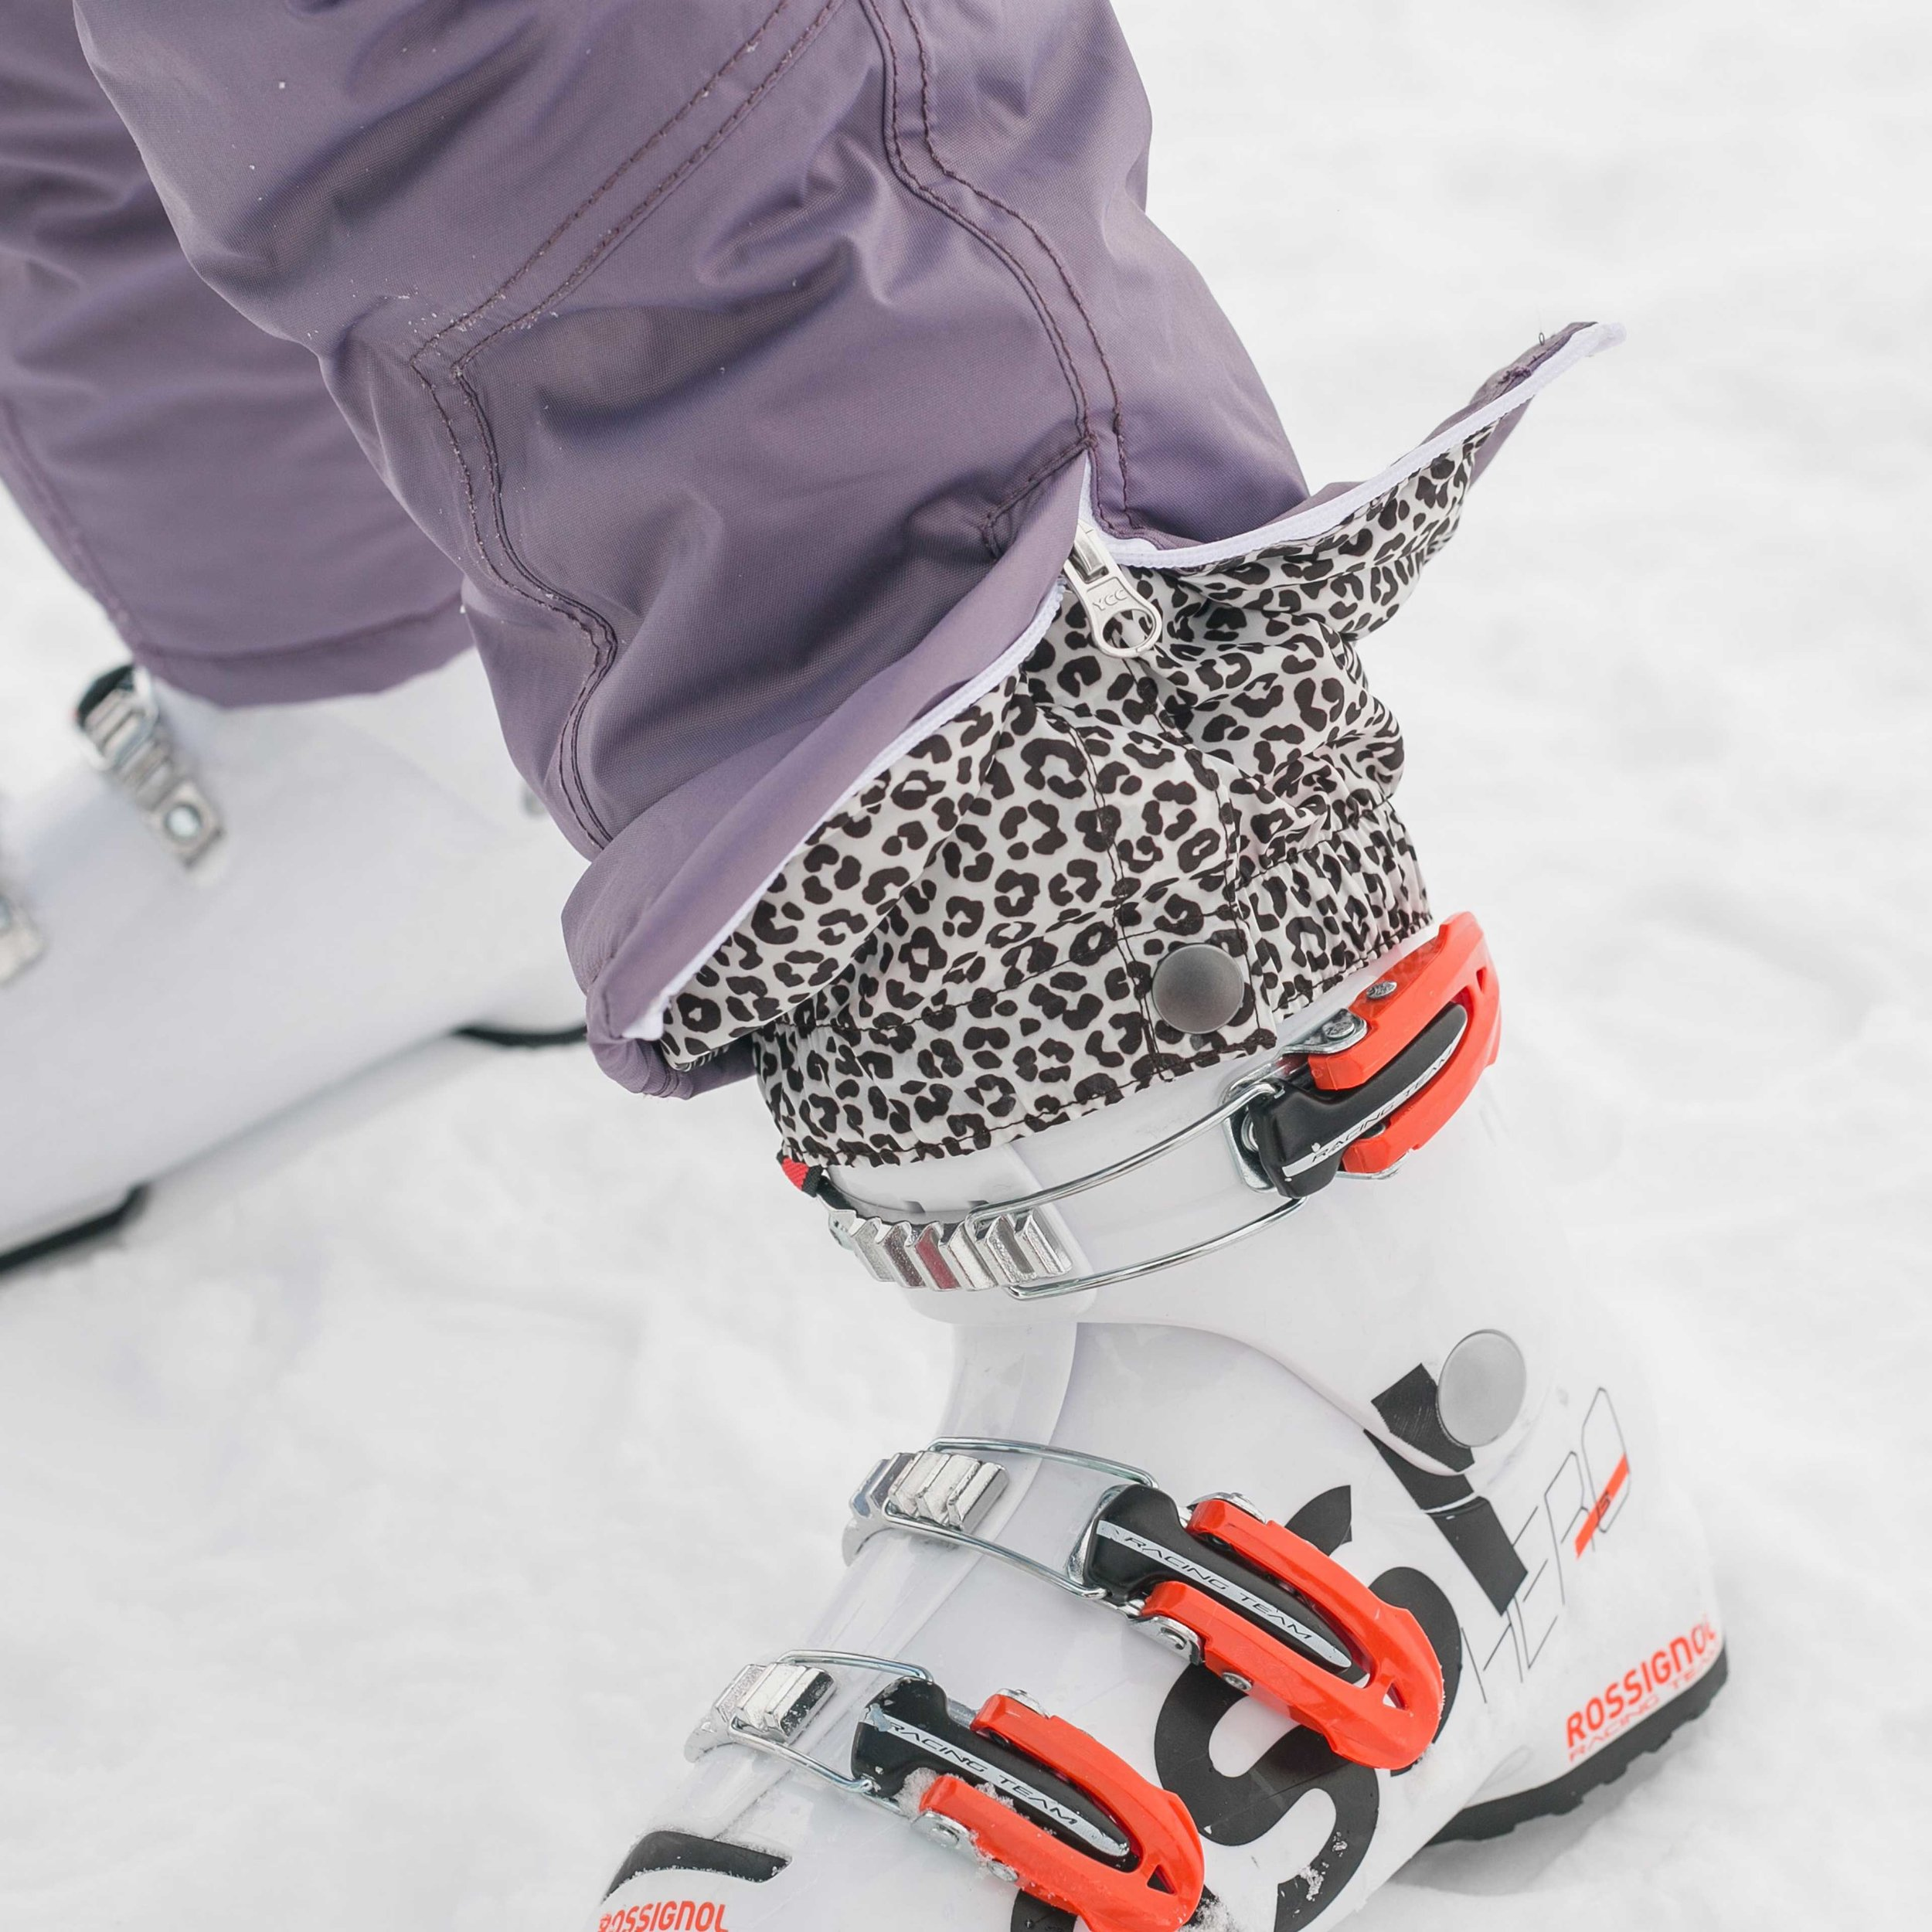 Ski Suit Boot Cover